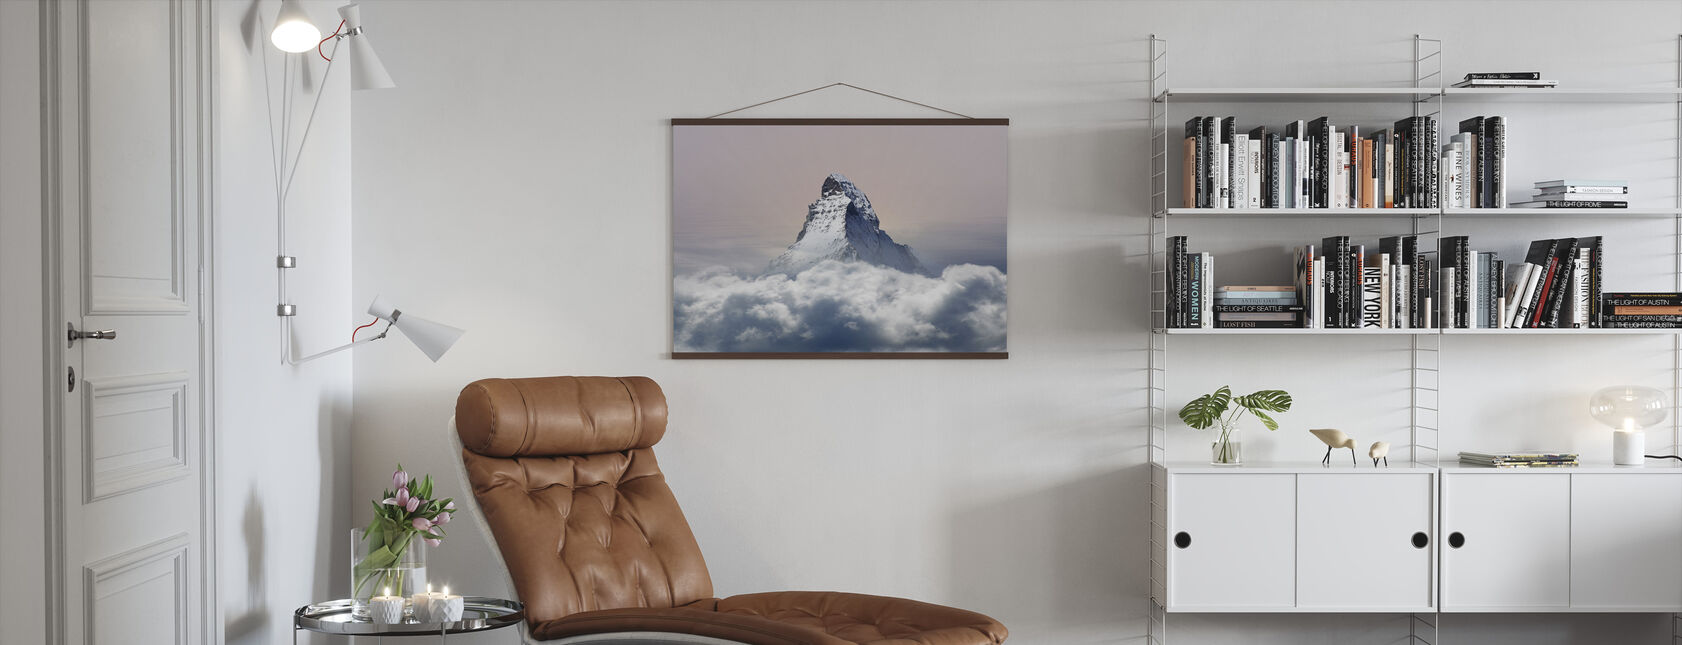 Cloudy Summit - Poster - Living Room